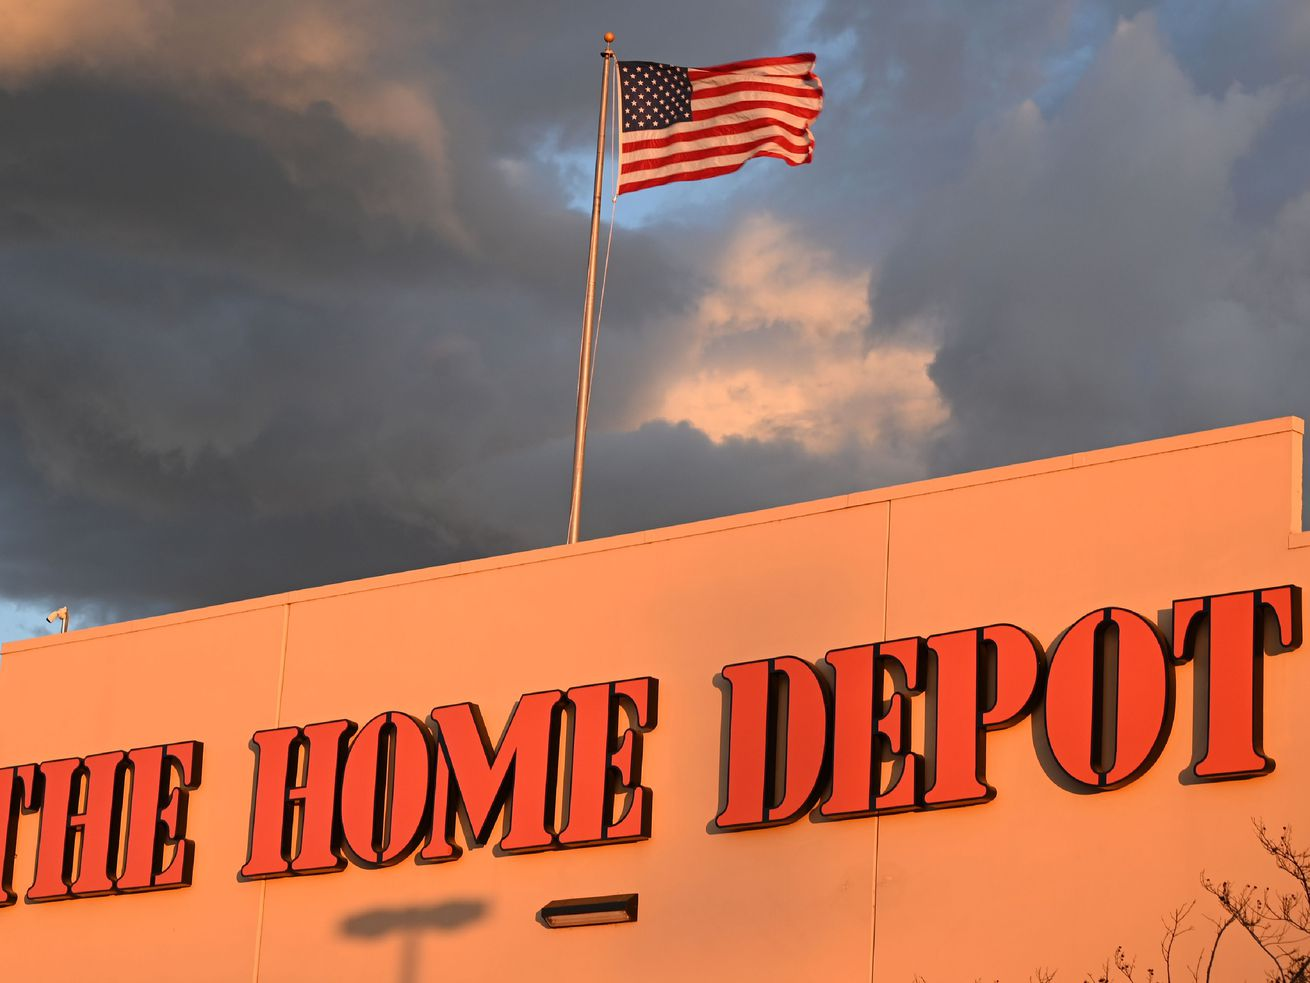 The latest politically motivated retail boycott? Home Depot. - The Reports